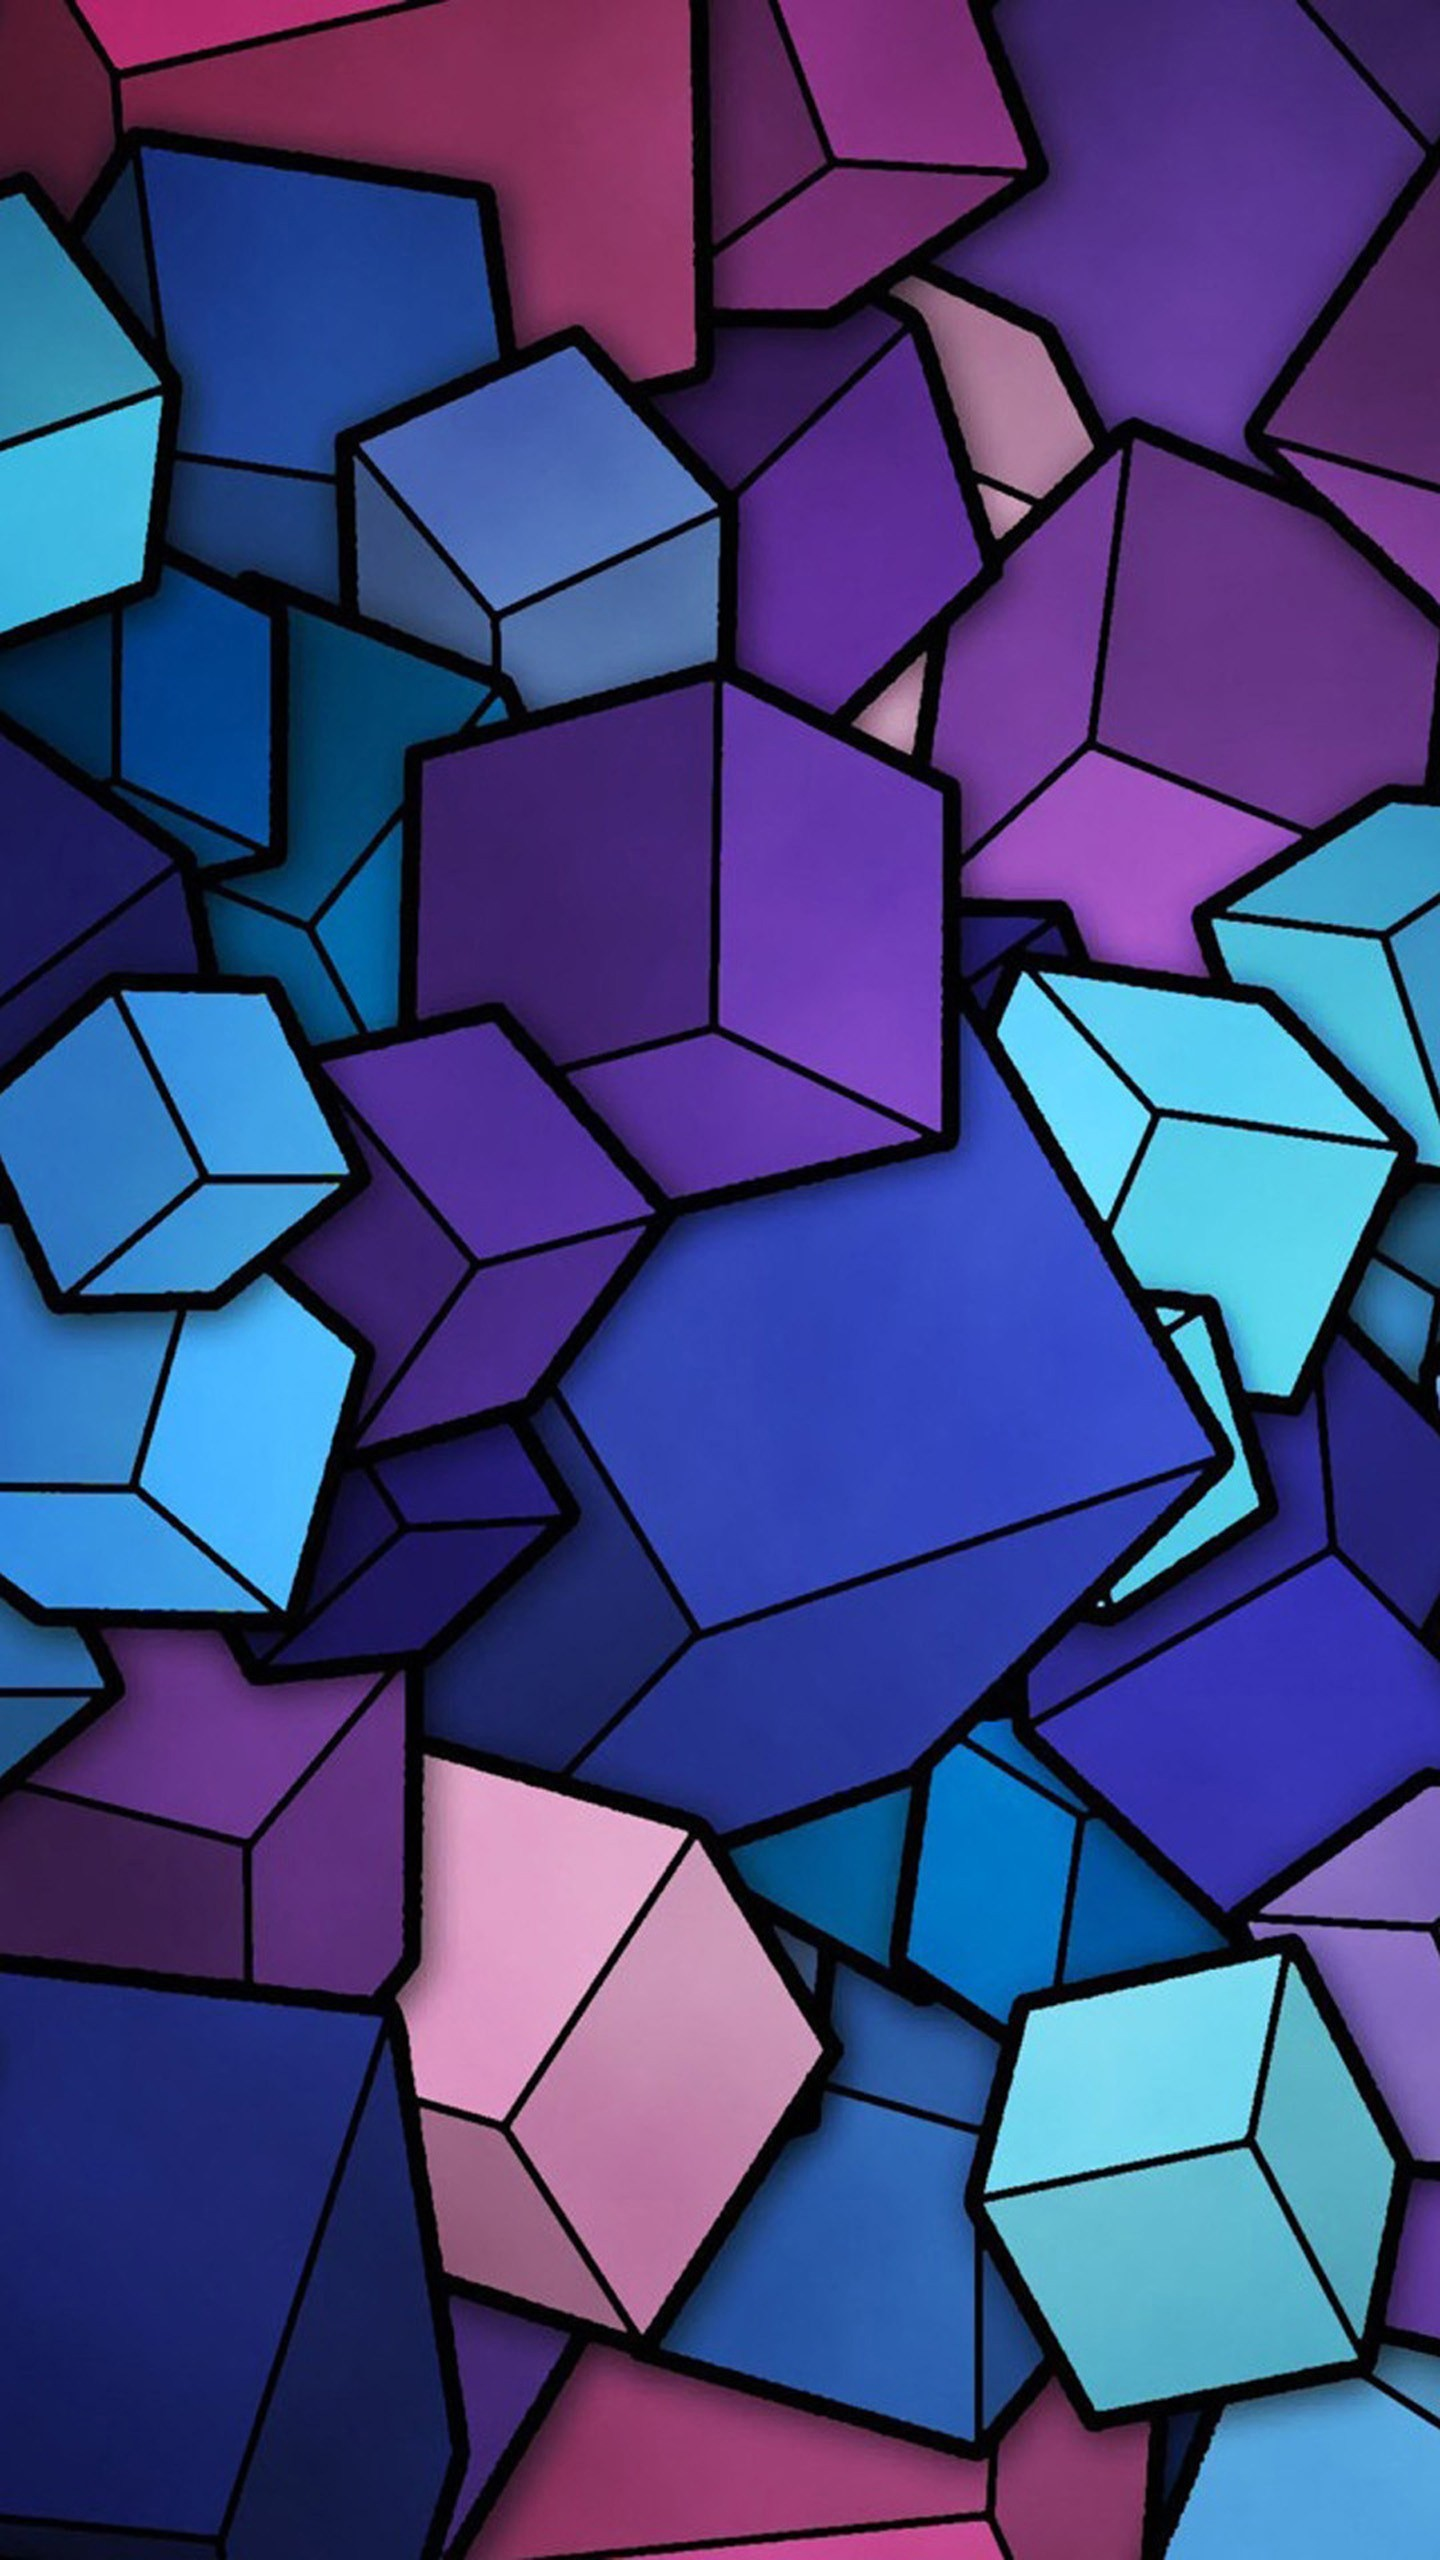 1440x2560 Abstract Cubes Blue Purple Wallpaper Galaxy S6, LG G4, HTC One M9